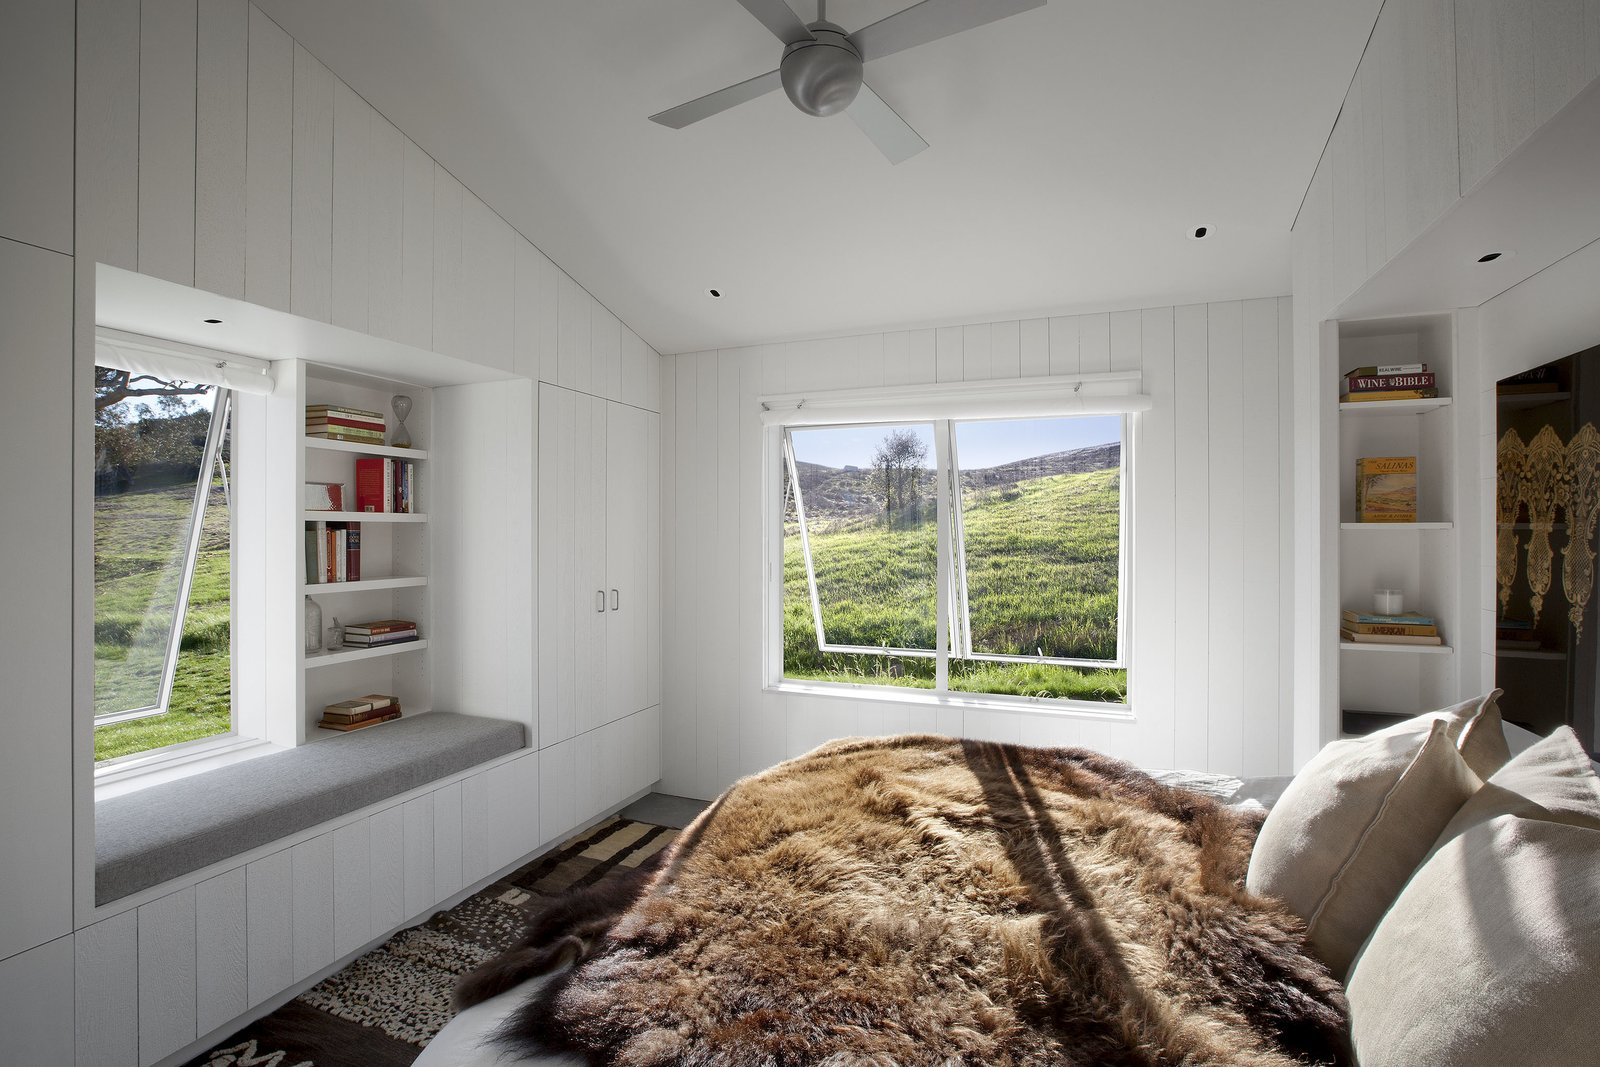 #TurnbullGriffinHaesloop #interior #bedroom #windowseat Tagged: Bedroom and Bed.  Hupomone Ranch by Turnbull Griffin Haesloop Architects